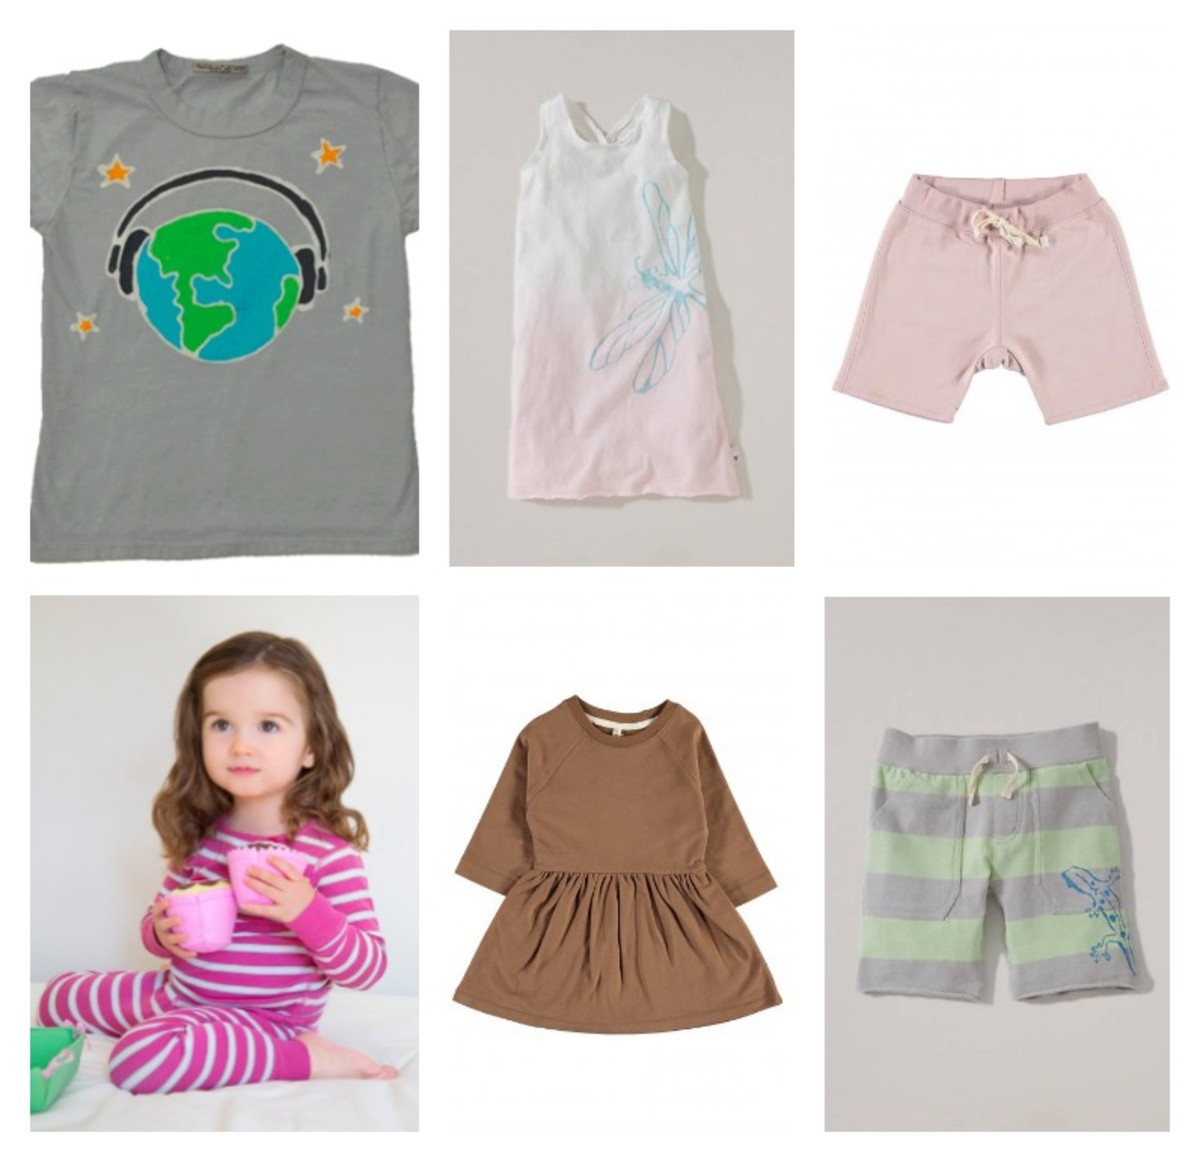 Kids Eco Fashion.jpg